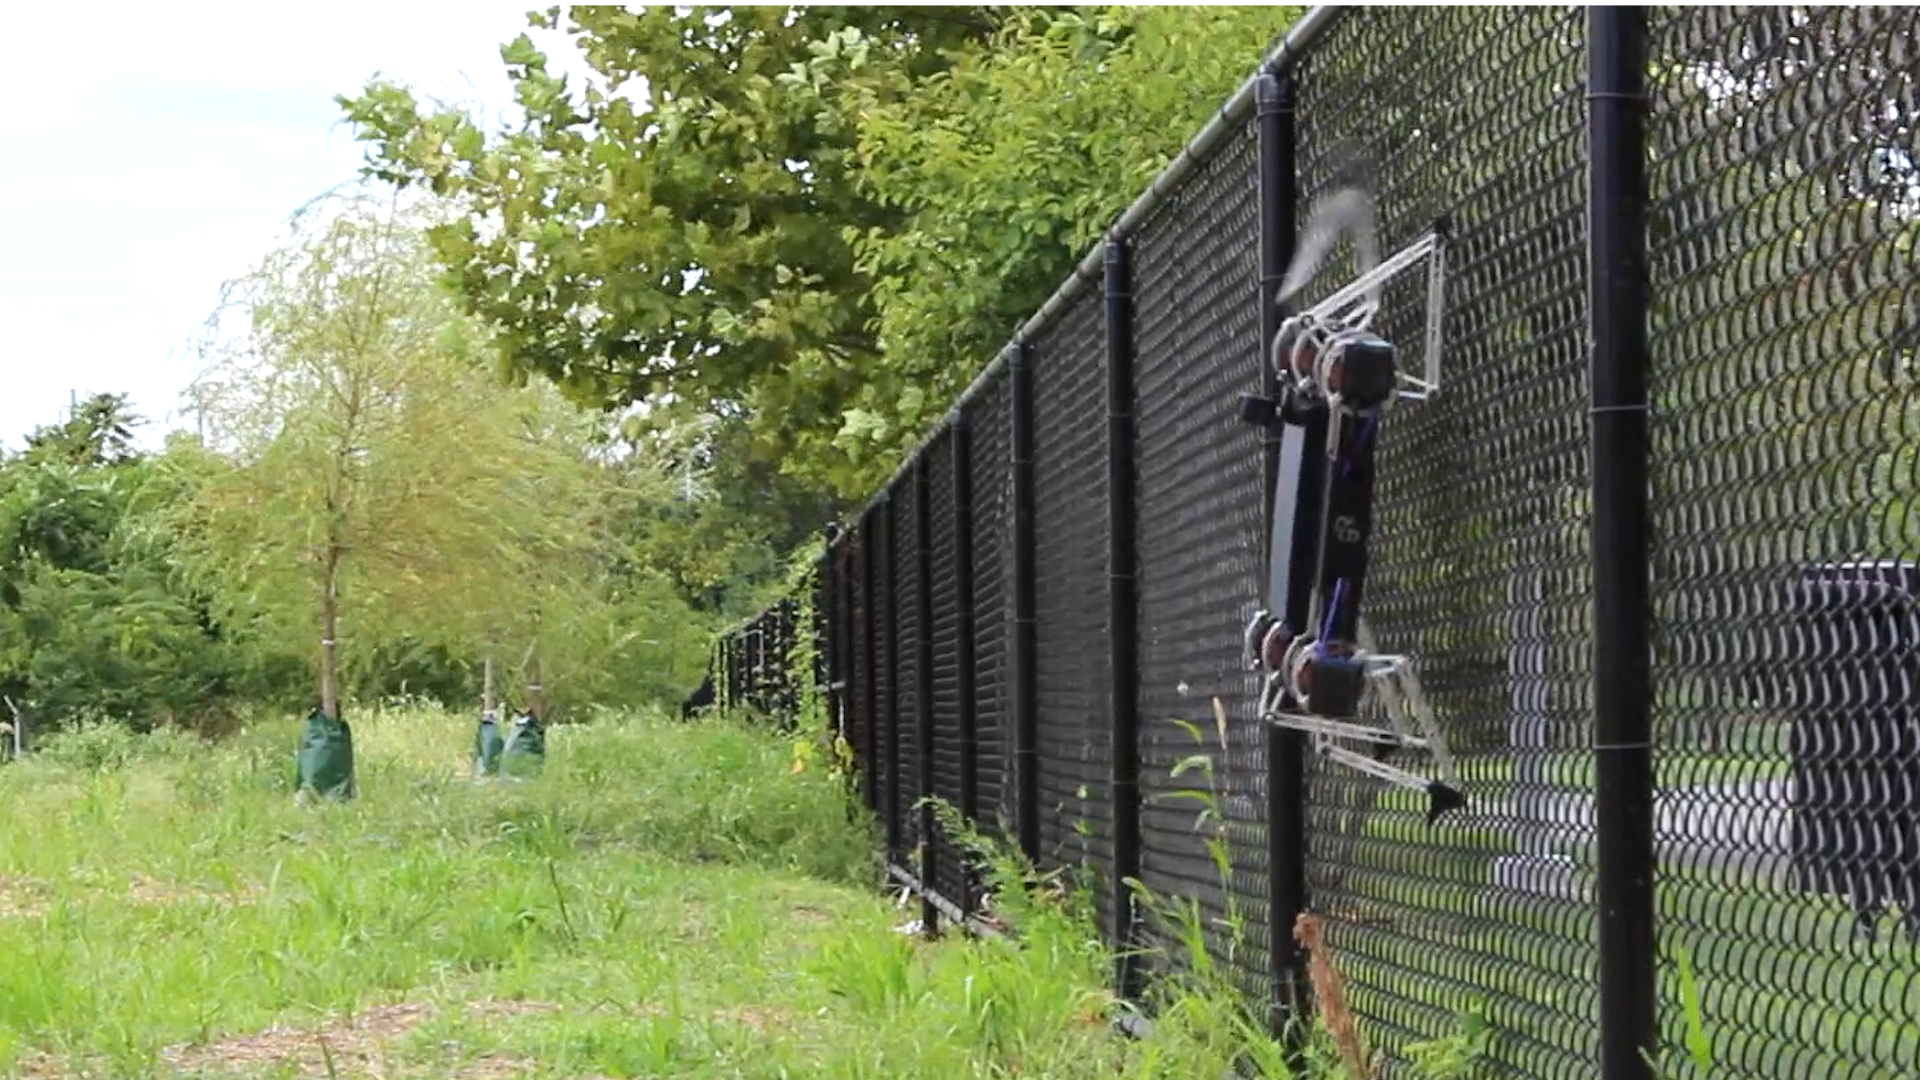 The Minitaur robot from Ghost Robotics can scale fences and open ...